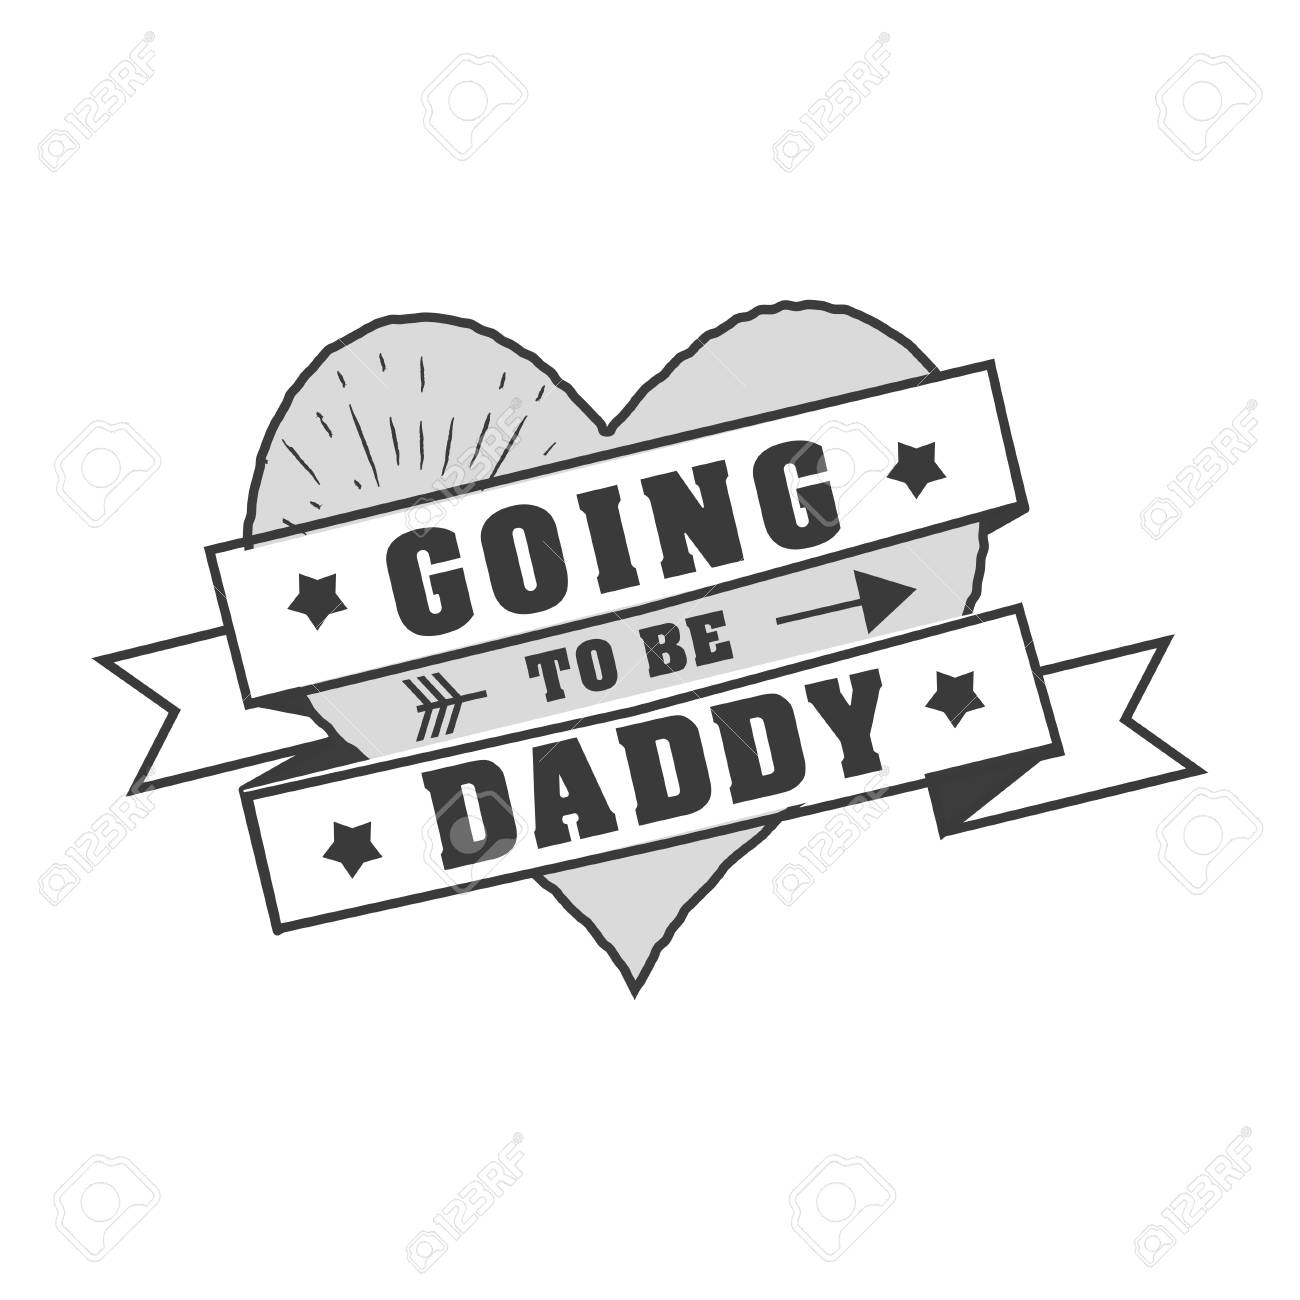 Isolated Happy fathers day quotes on the white background. World..